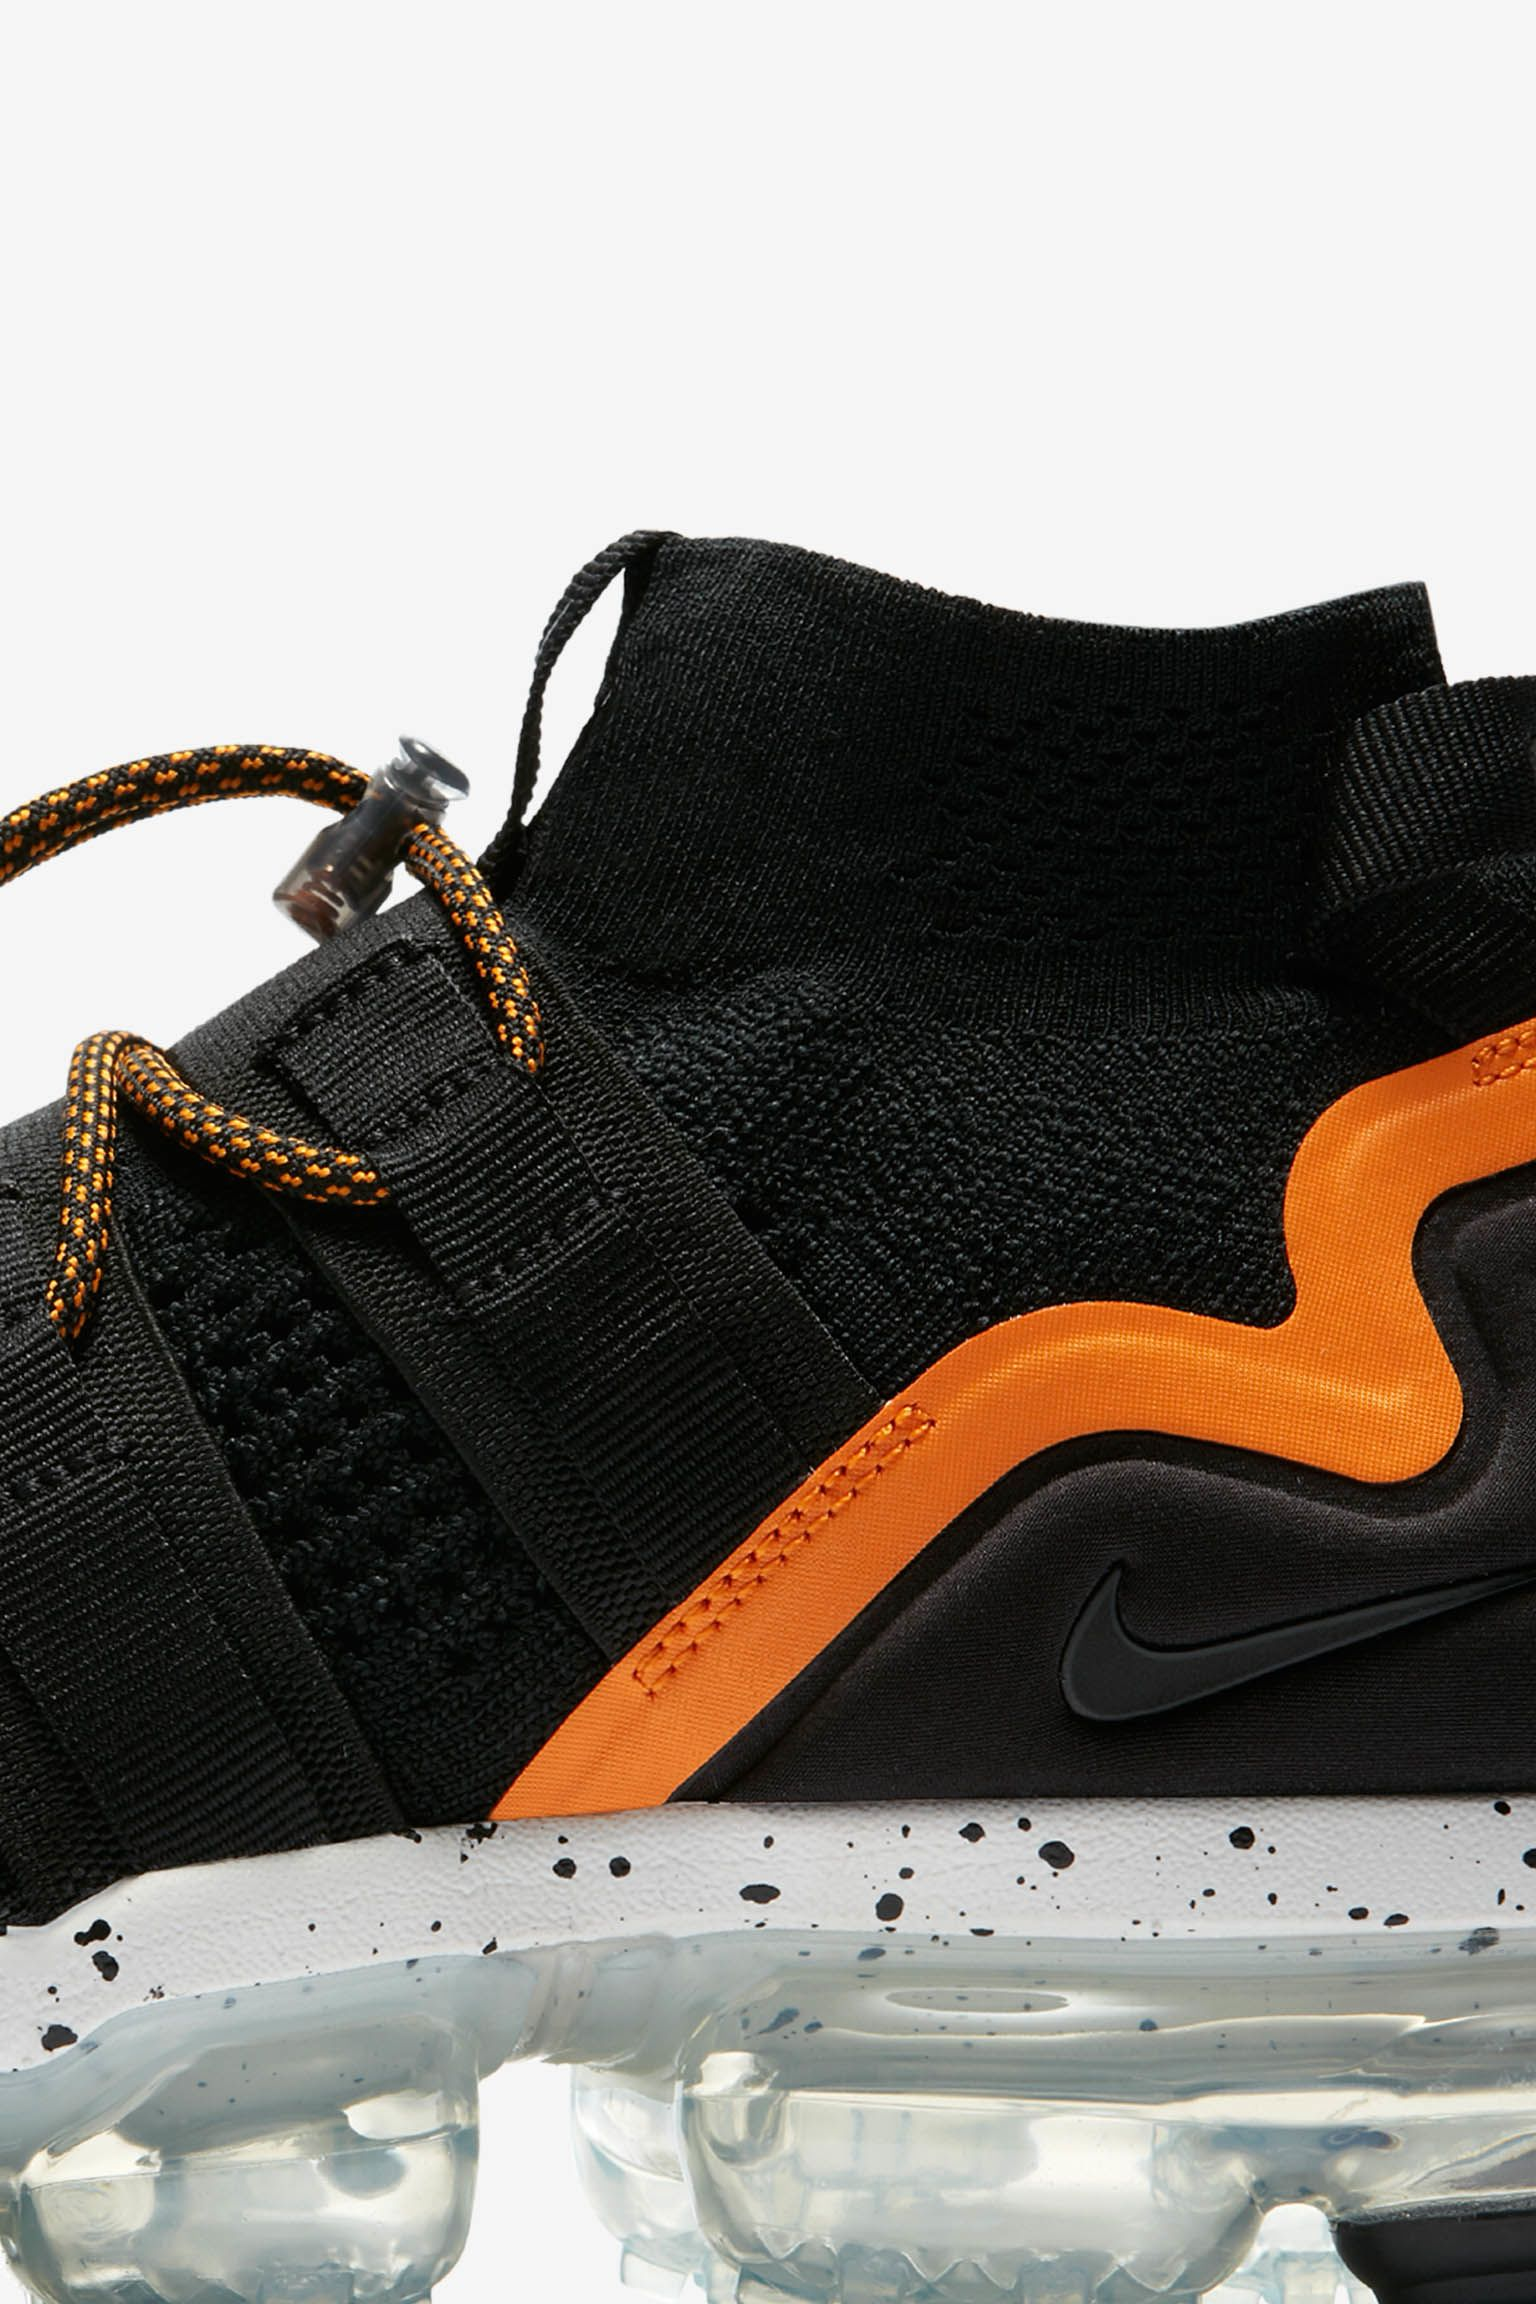 Nike Air Vapormax Utility 'Black & Orange Peel' Release Date